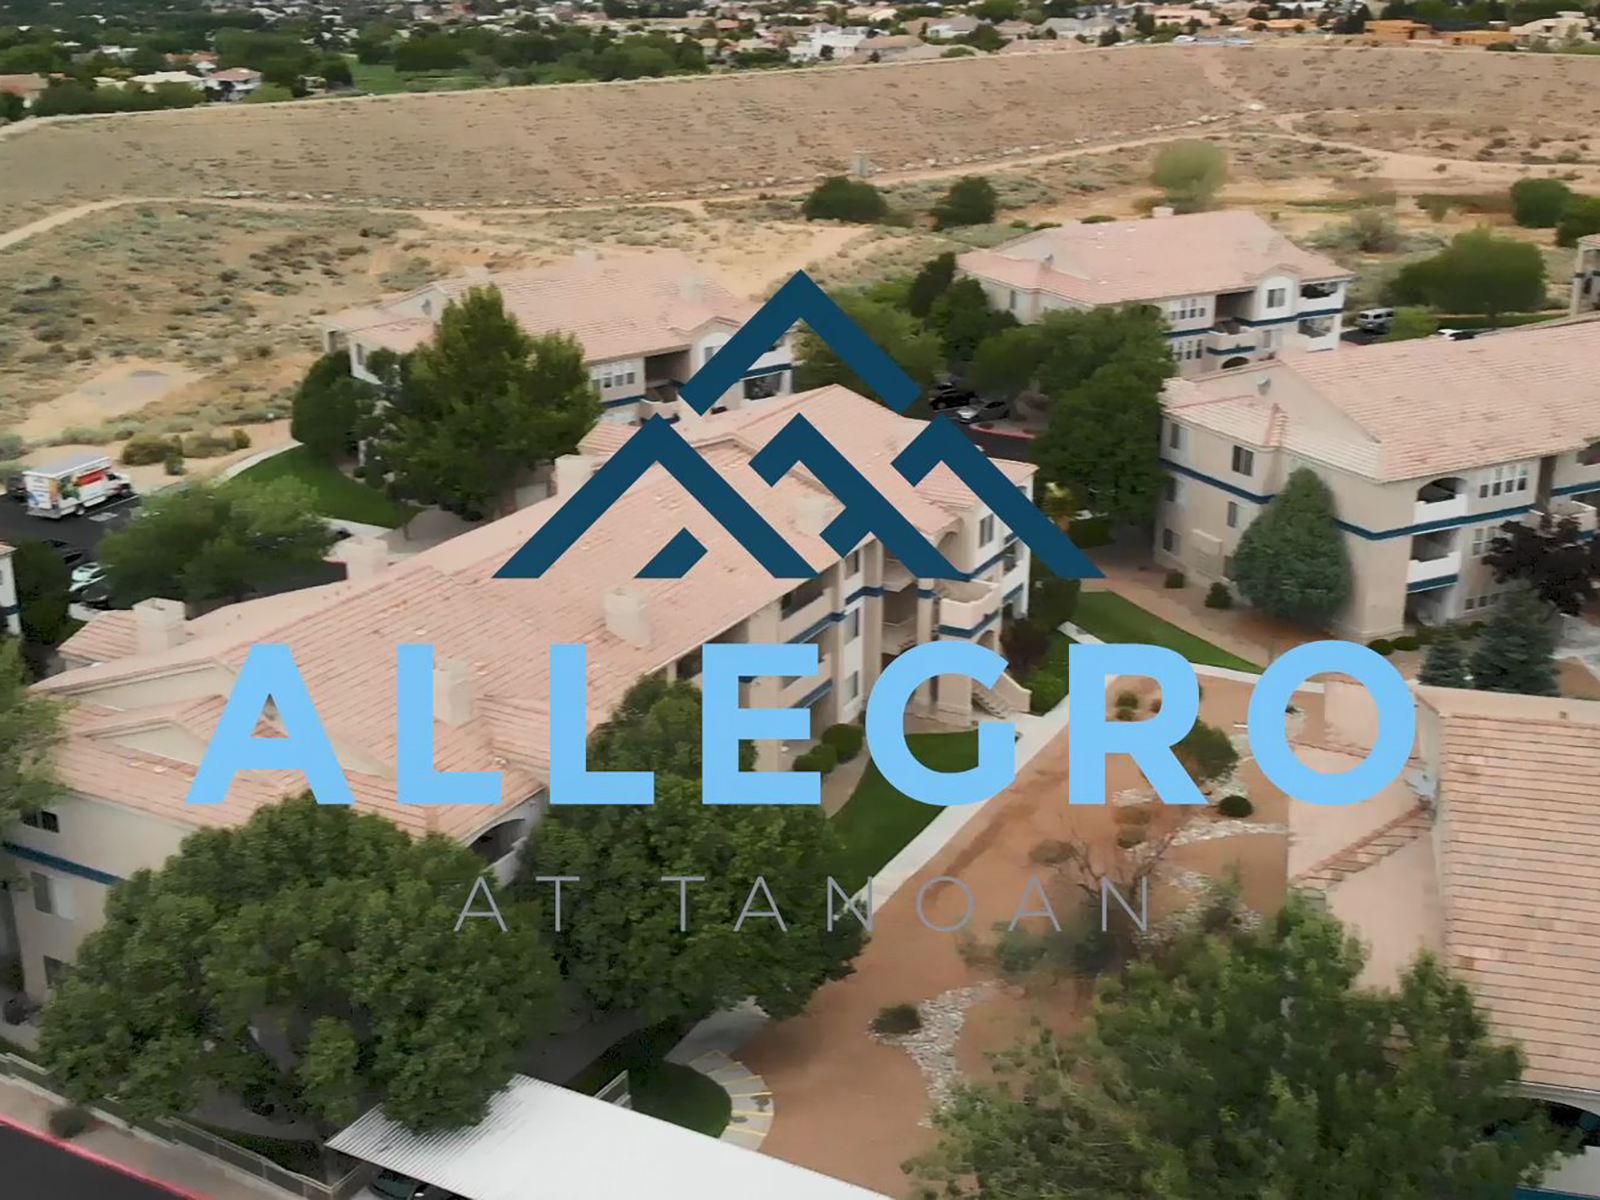 Experience Allegro at Tanoan Apartments, and dive into a video tour of our thriving community. We're ready to show you all of the things that make us one of a kind.